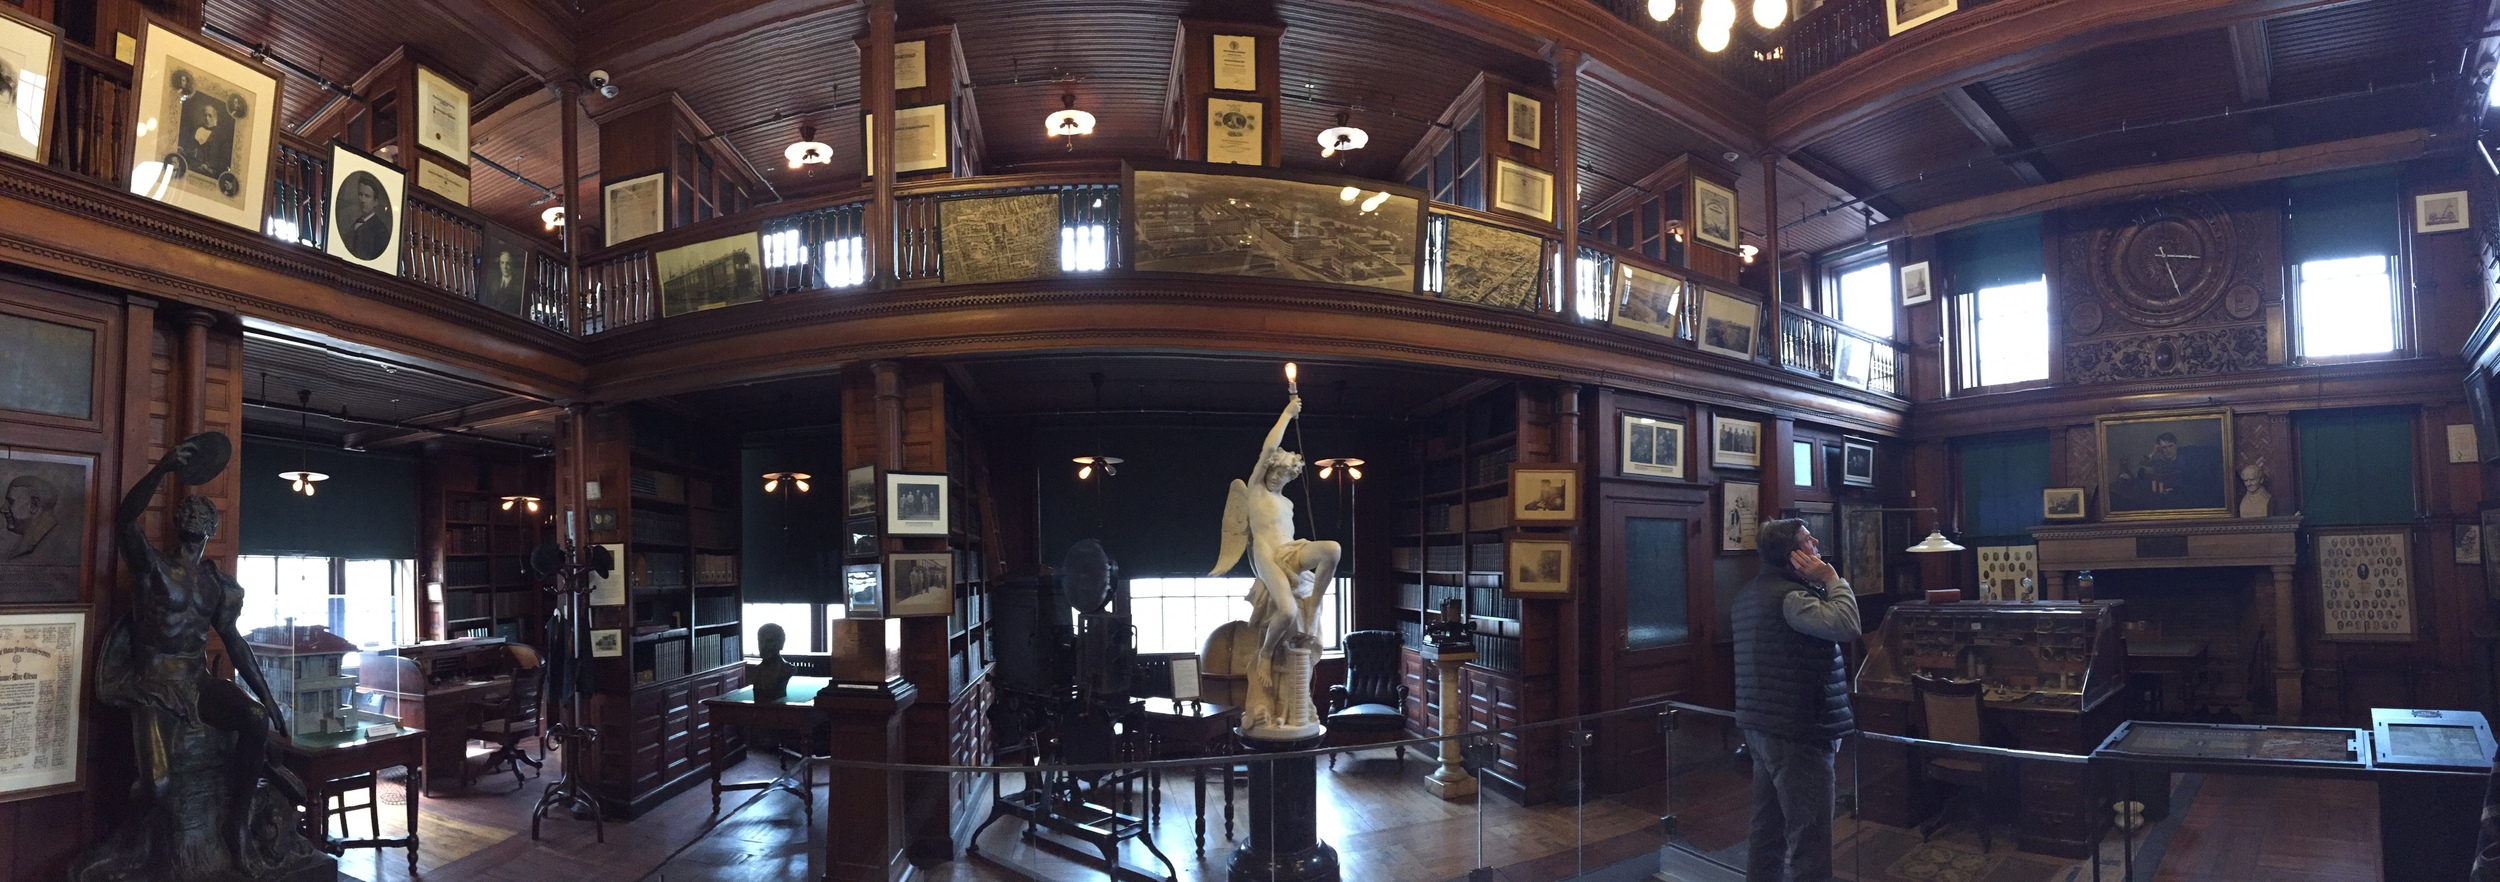 Edison's Library pano